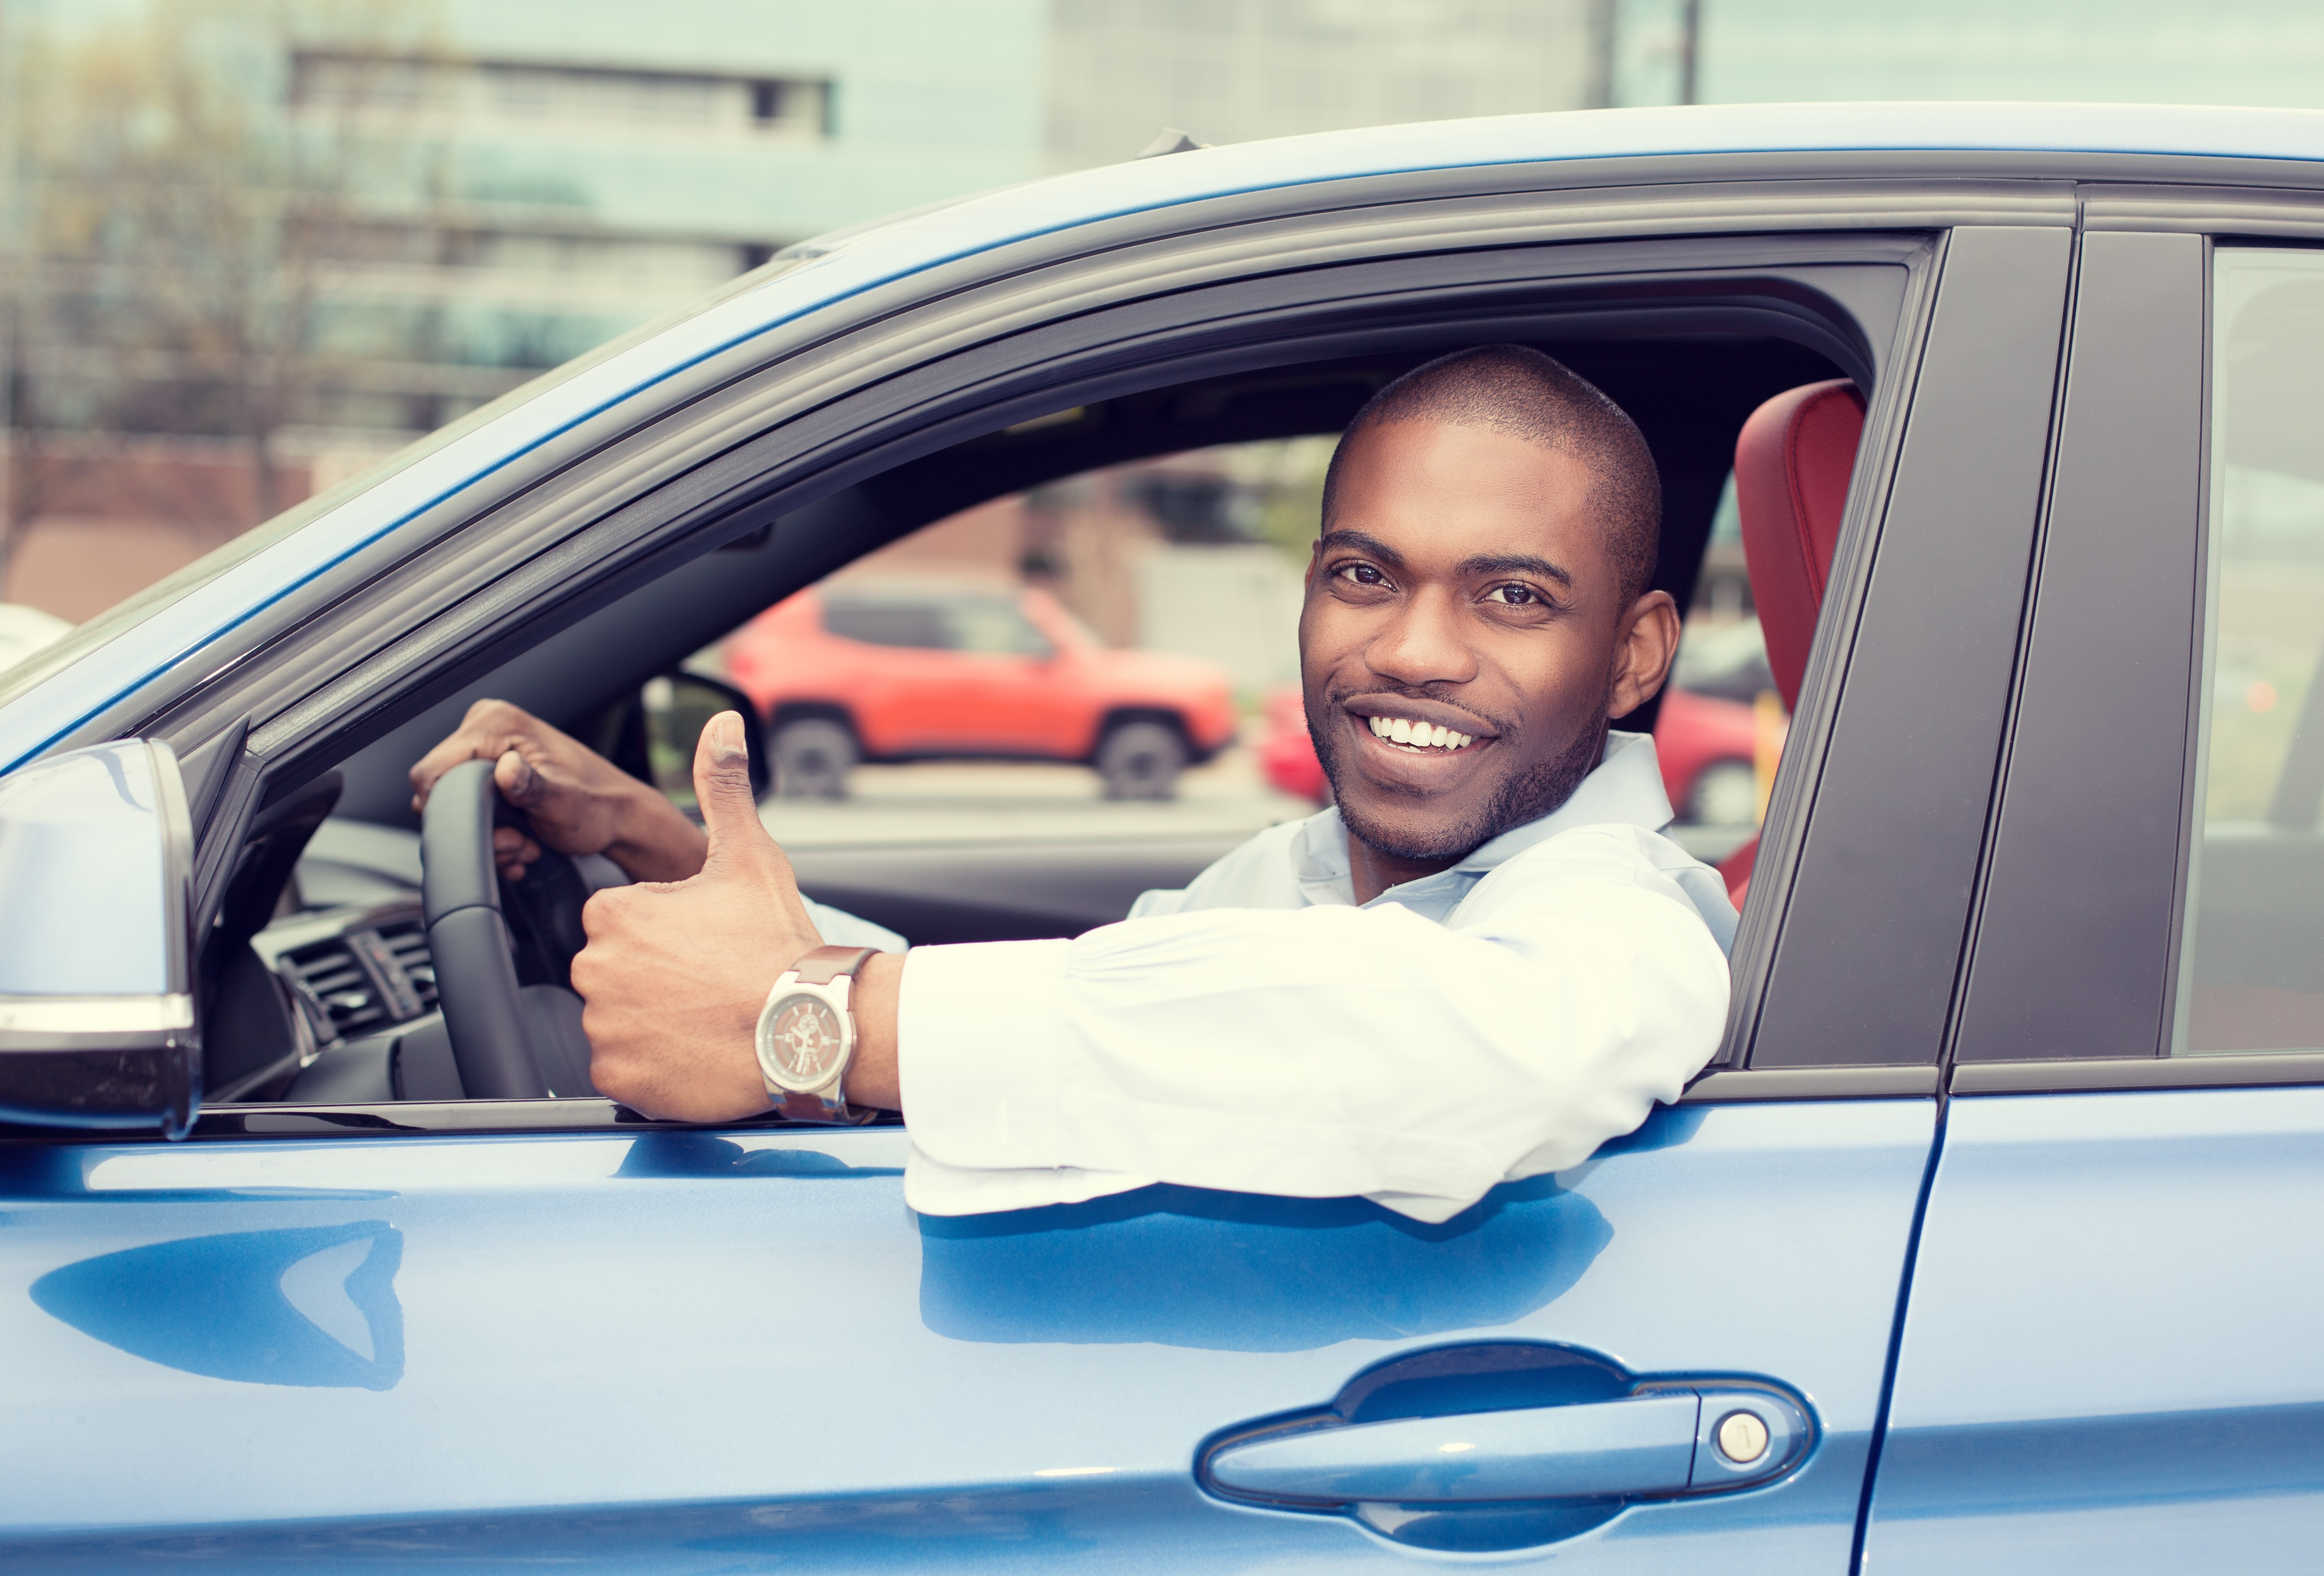 Driver giving thumbs up to smarter financing